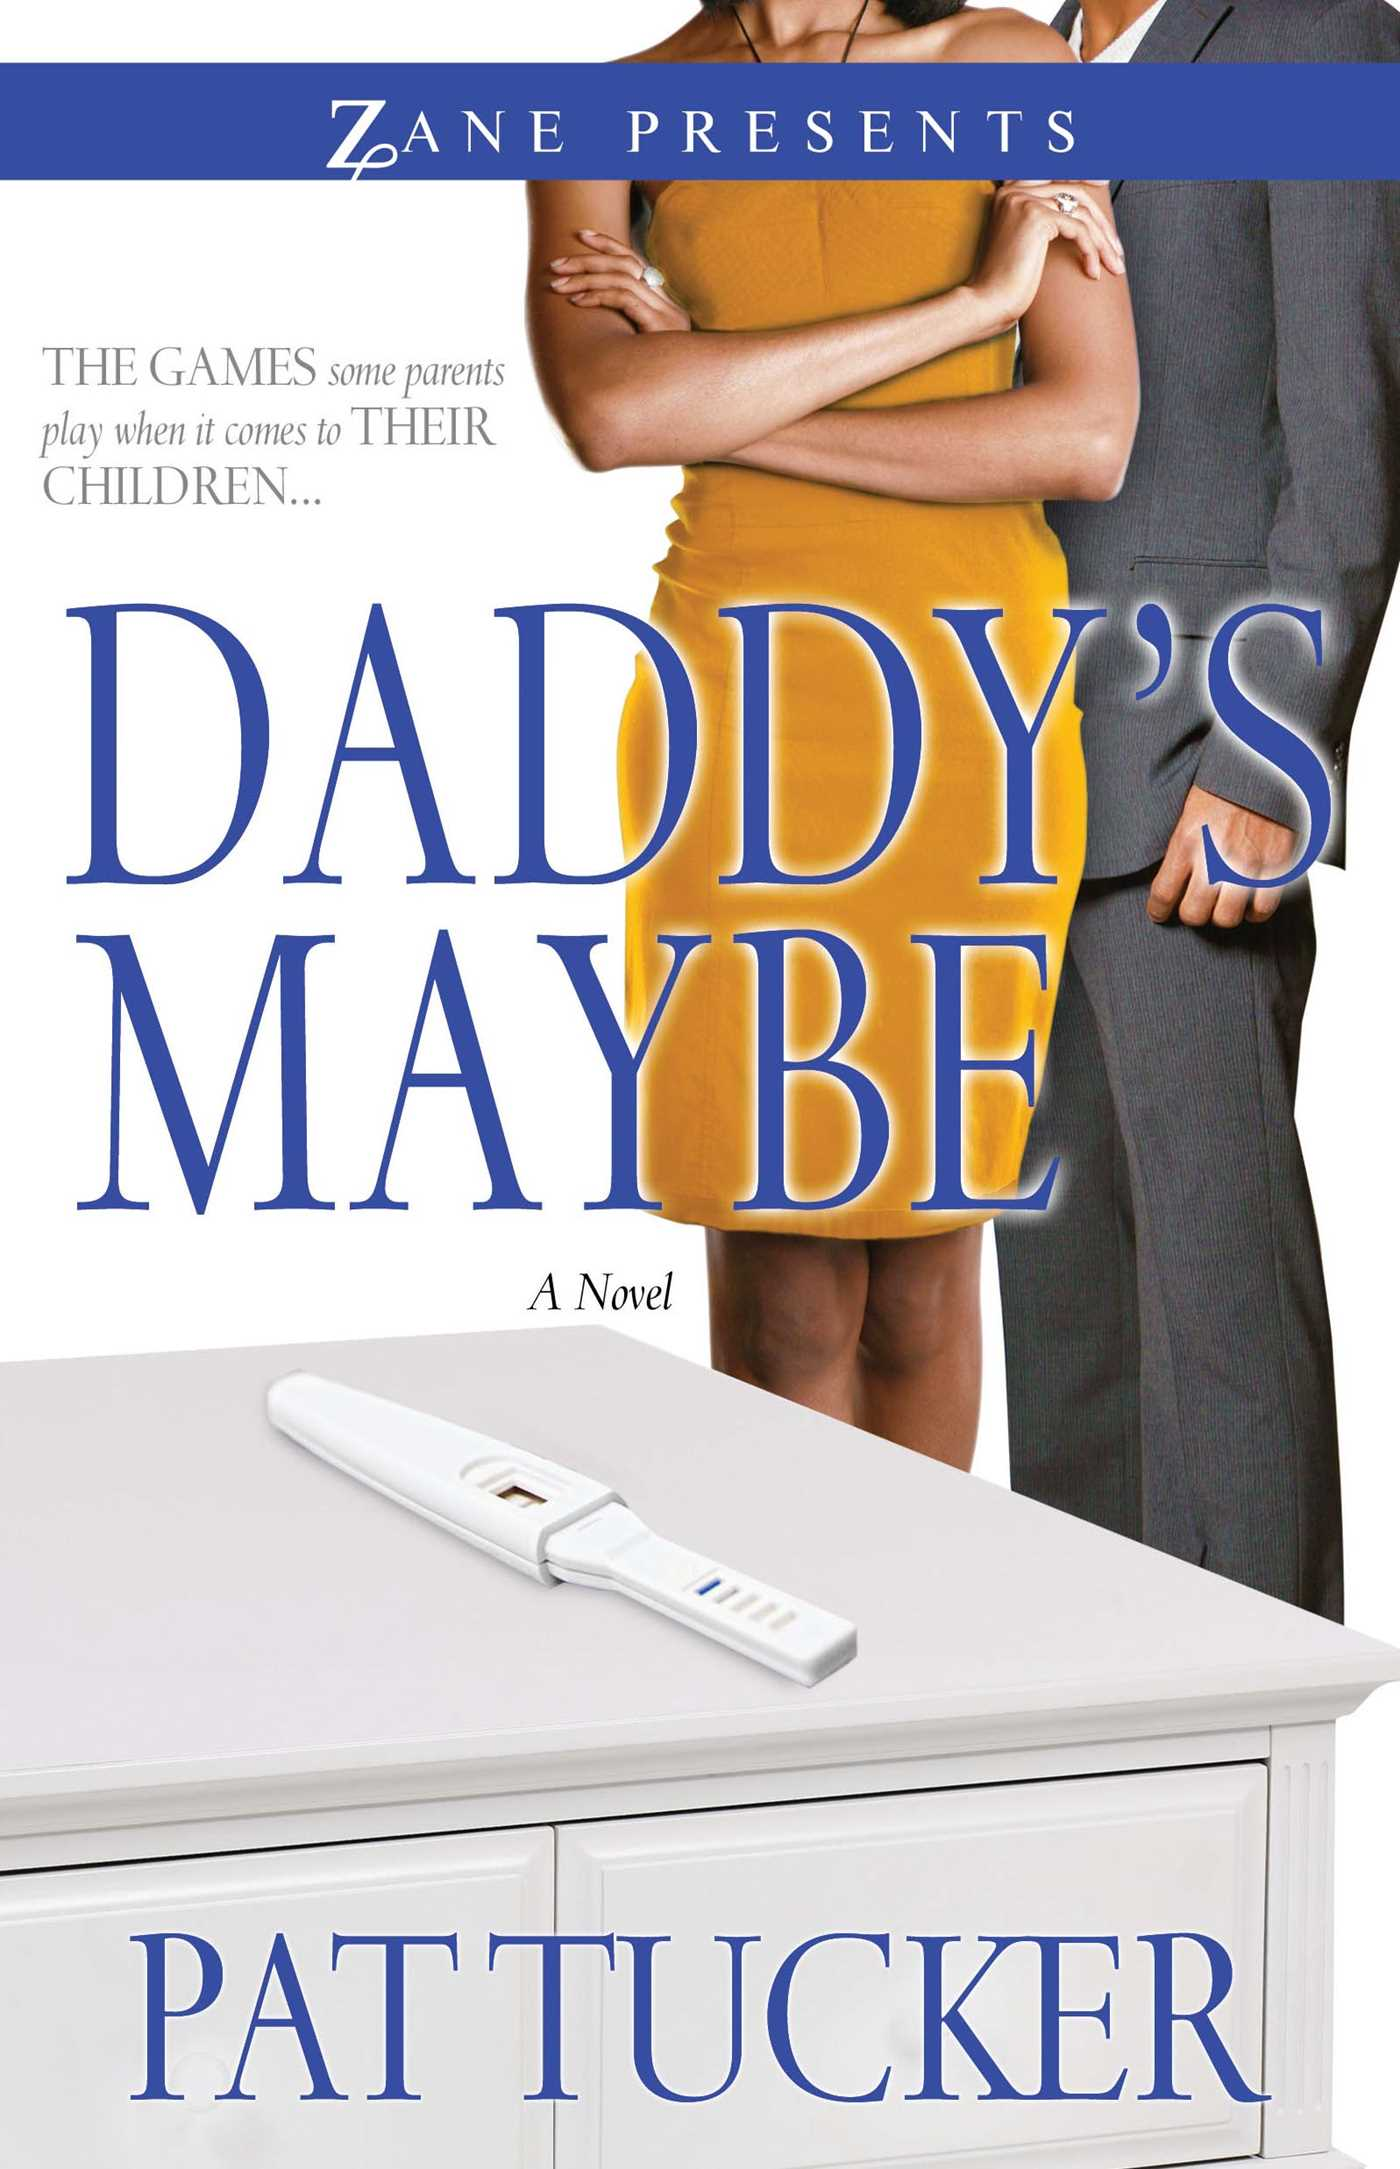 Daddys-maybe-9781593094041_hr